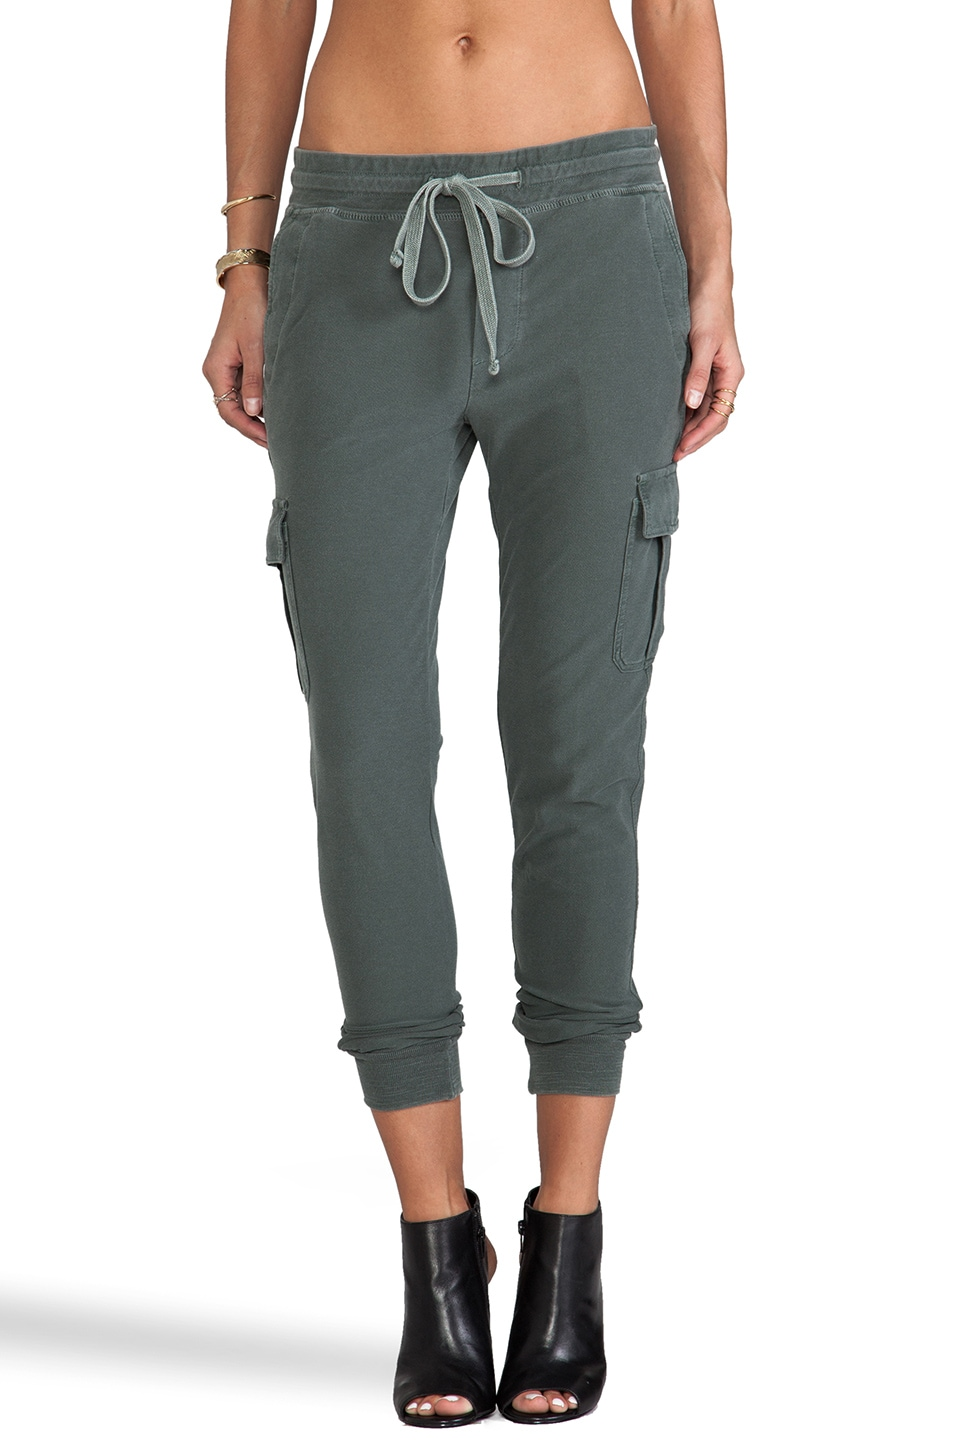 James Perse Knit Twill Cargo Pant in Jungle